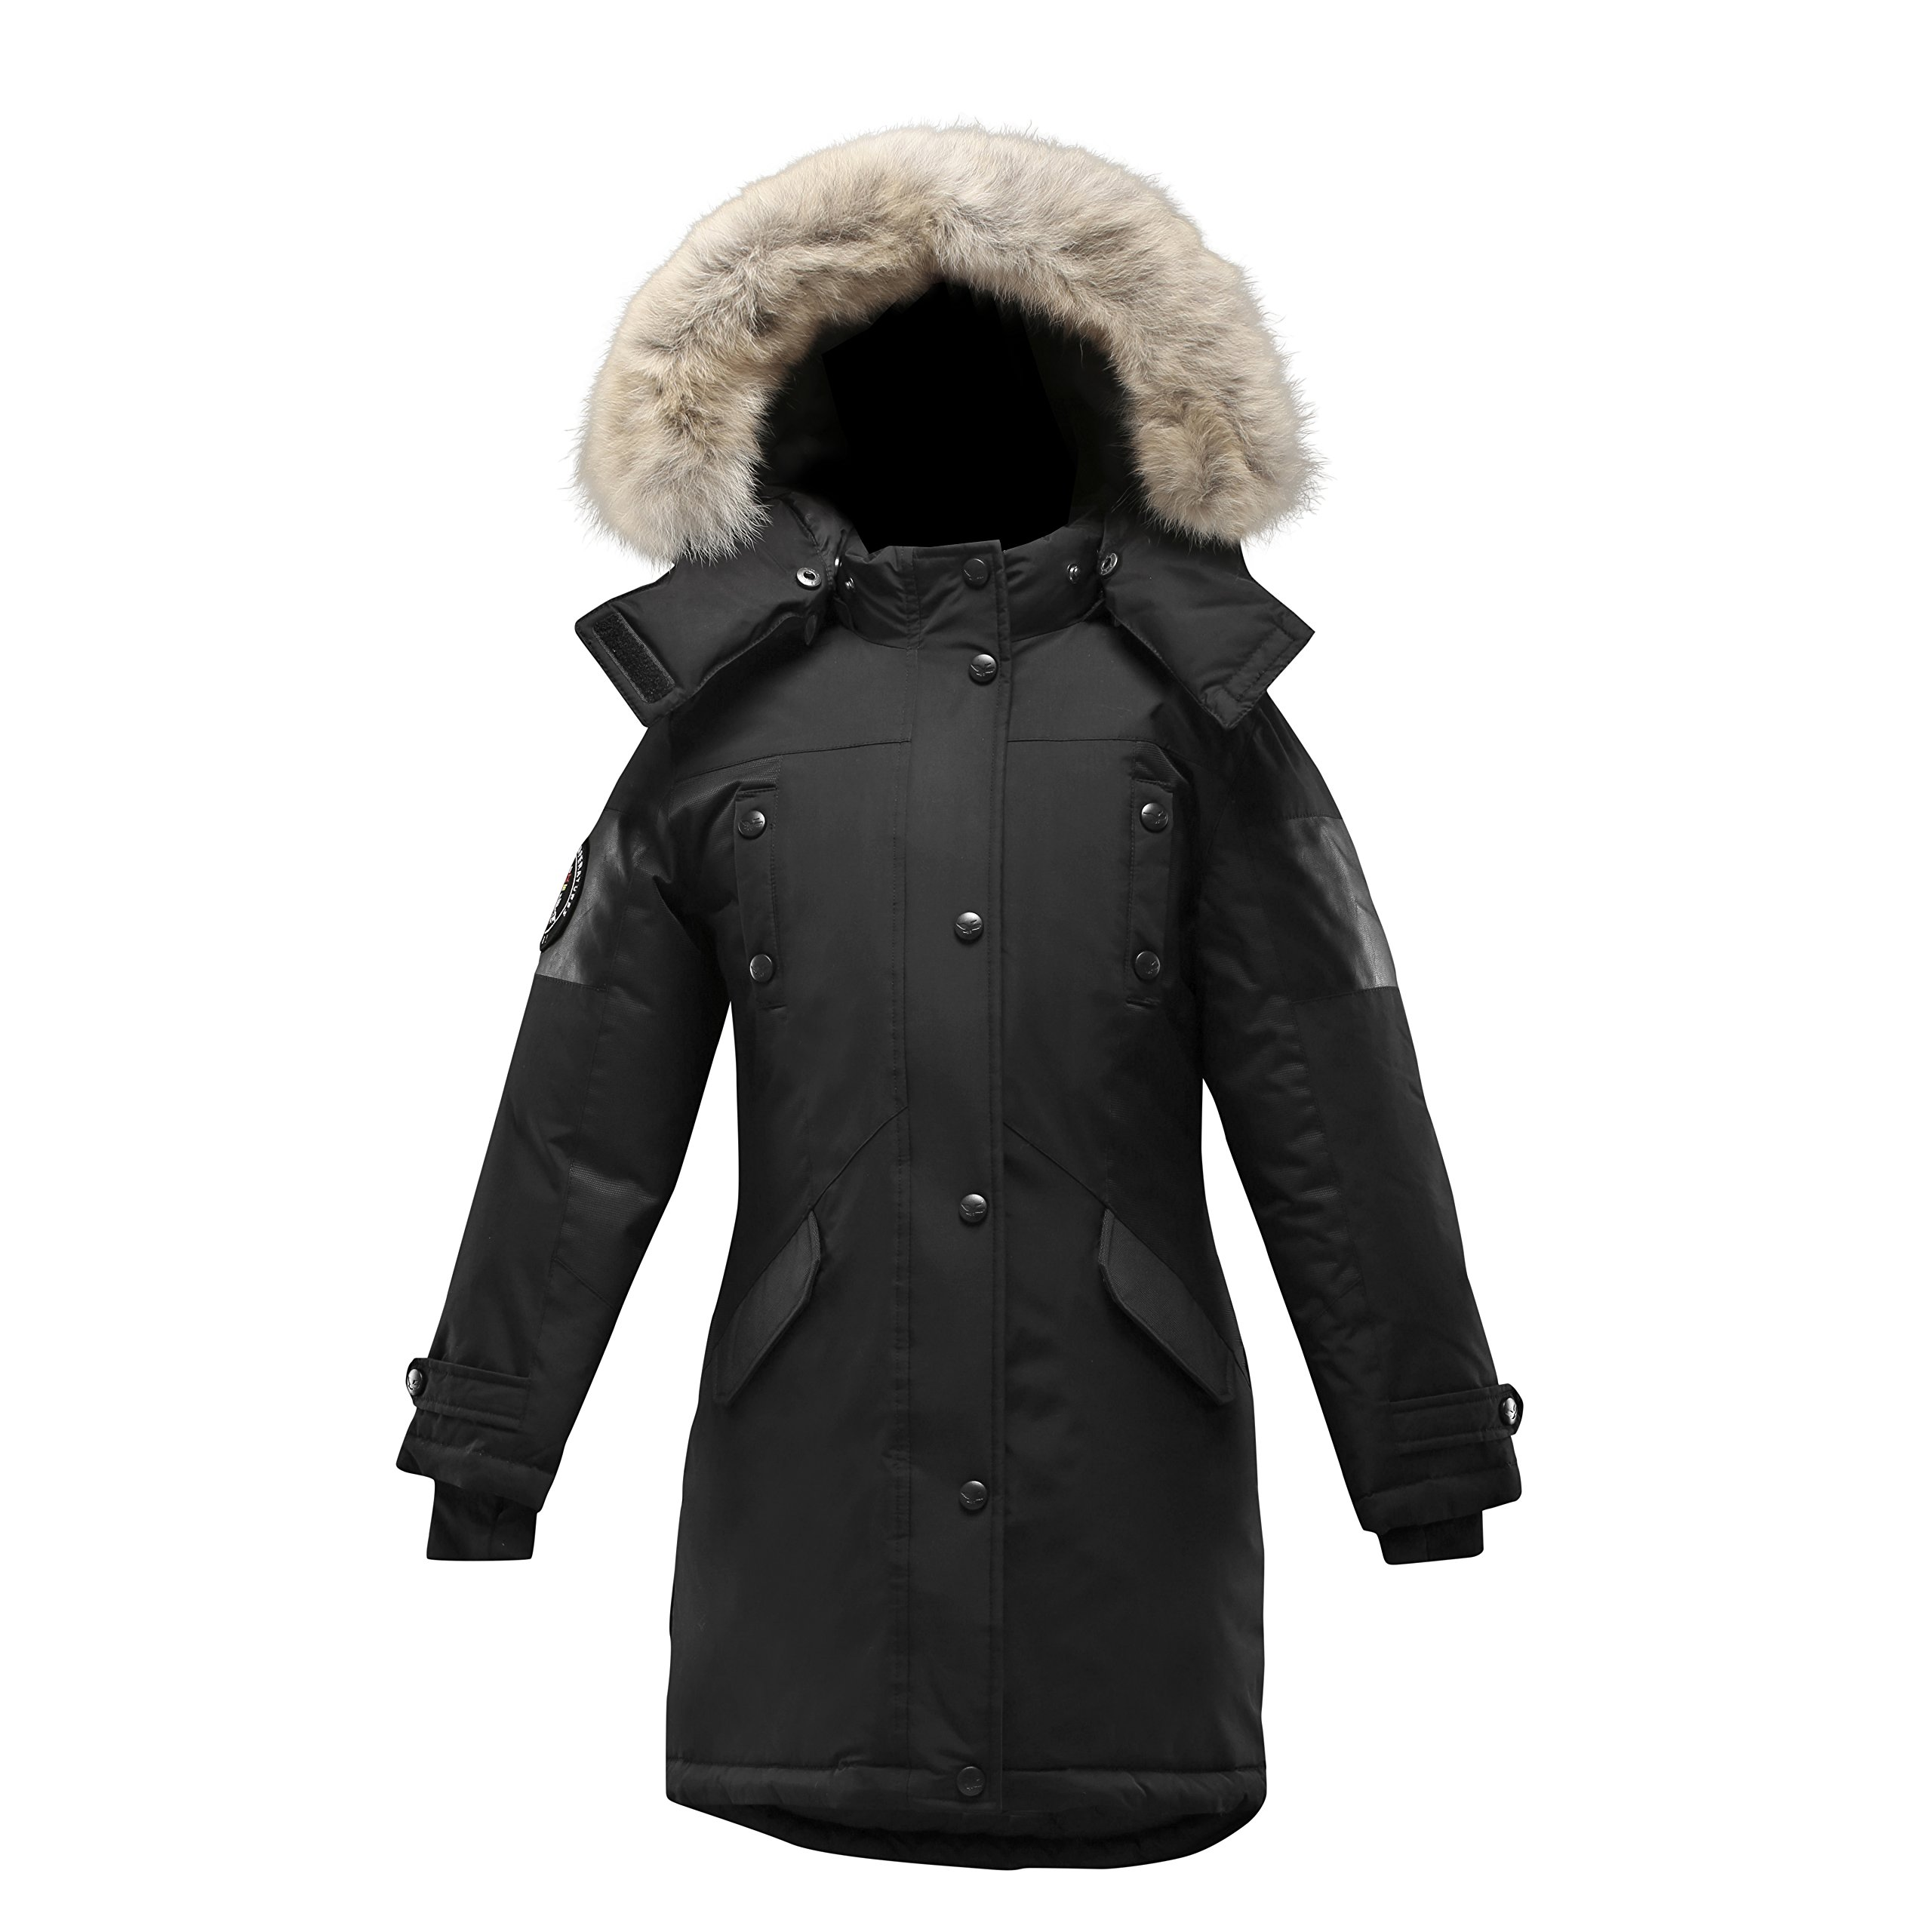 Triple F.A.T. Goose Embree Girls Down Jacket Parka with Real Coyote Fur (10, Black)